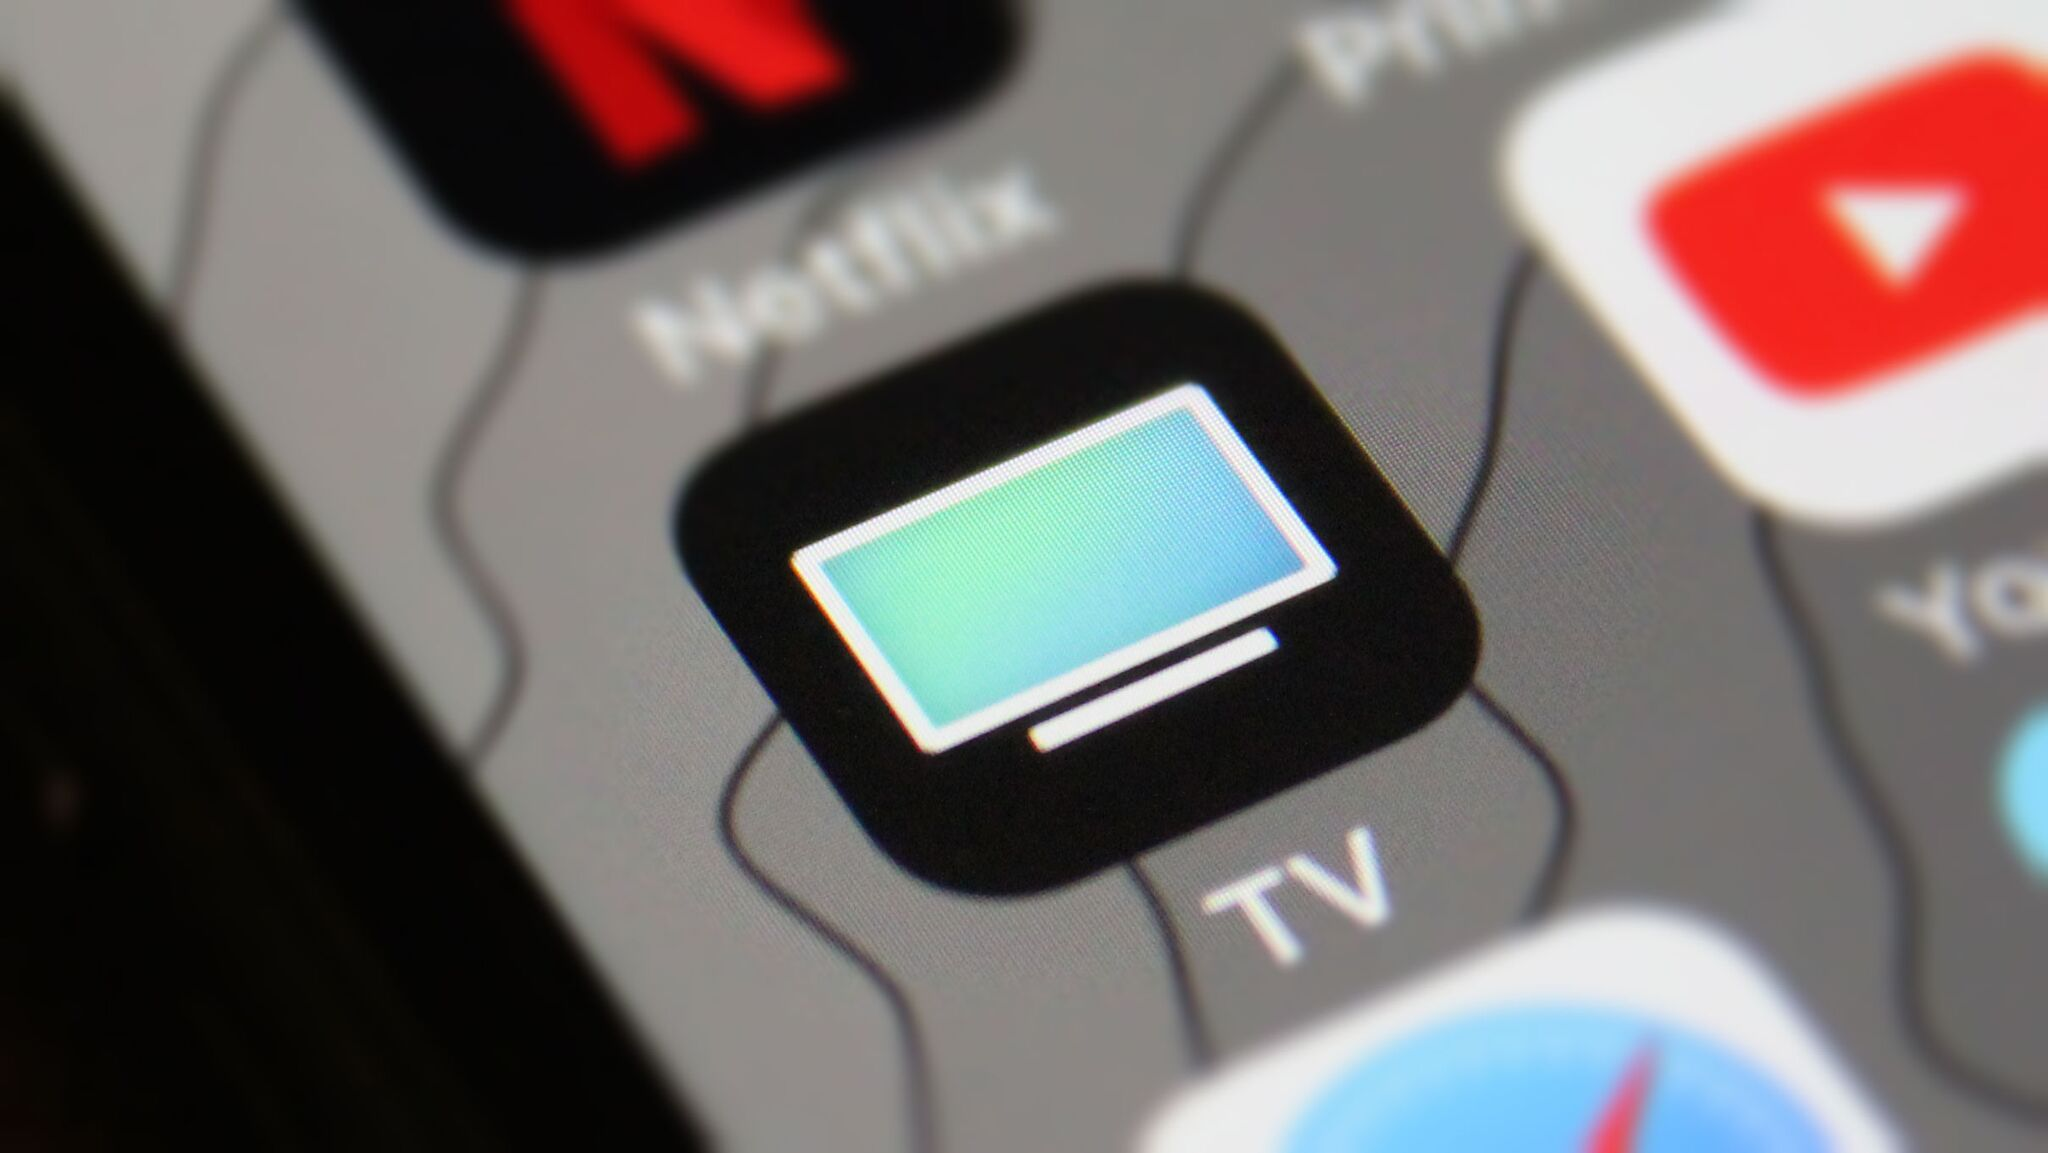 Follow the steps and learn how to connect iphone to TV